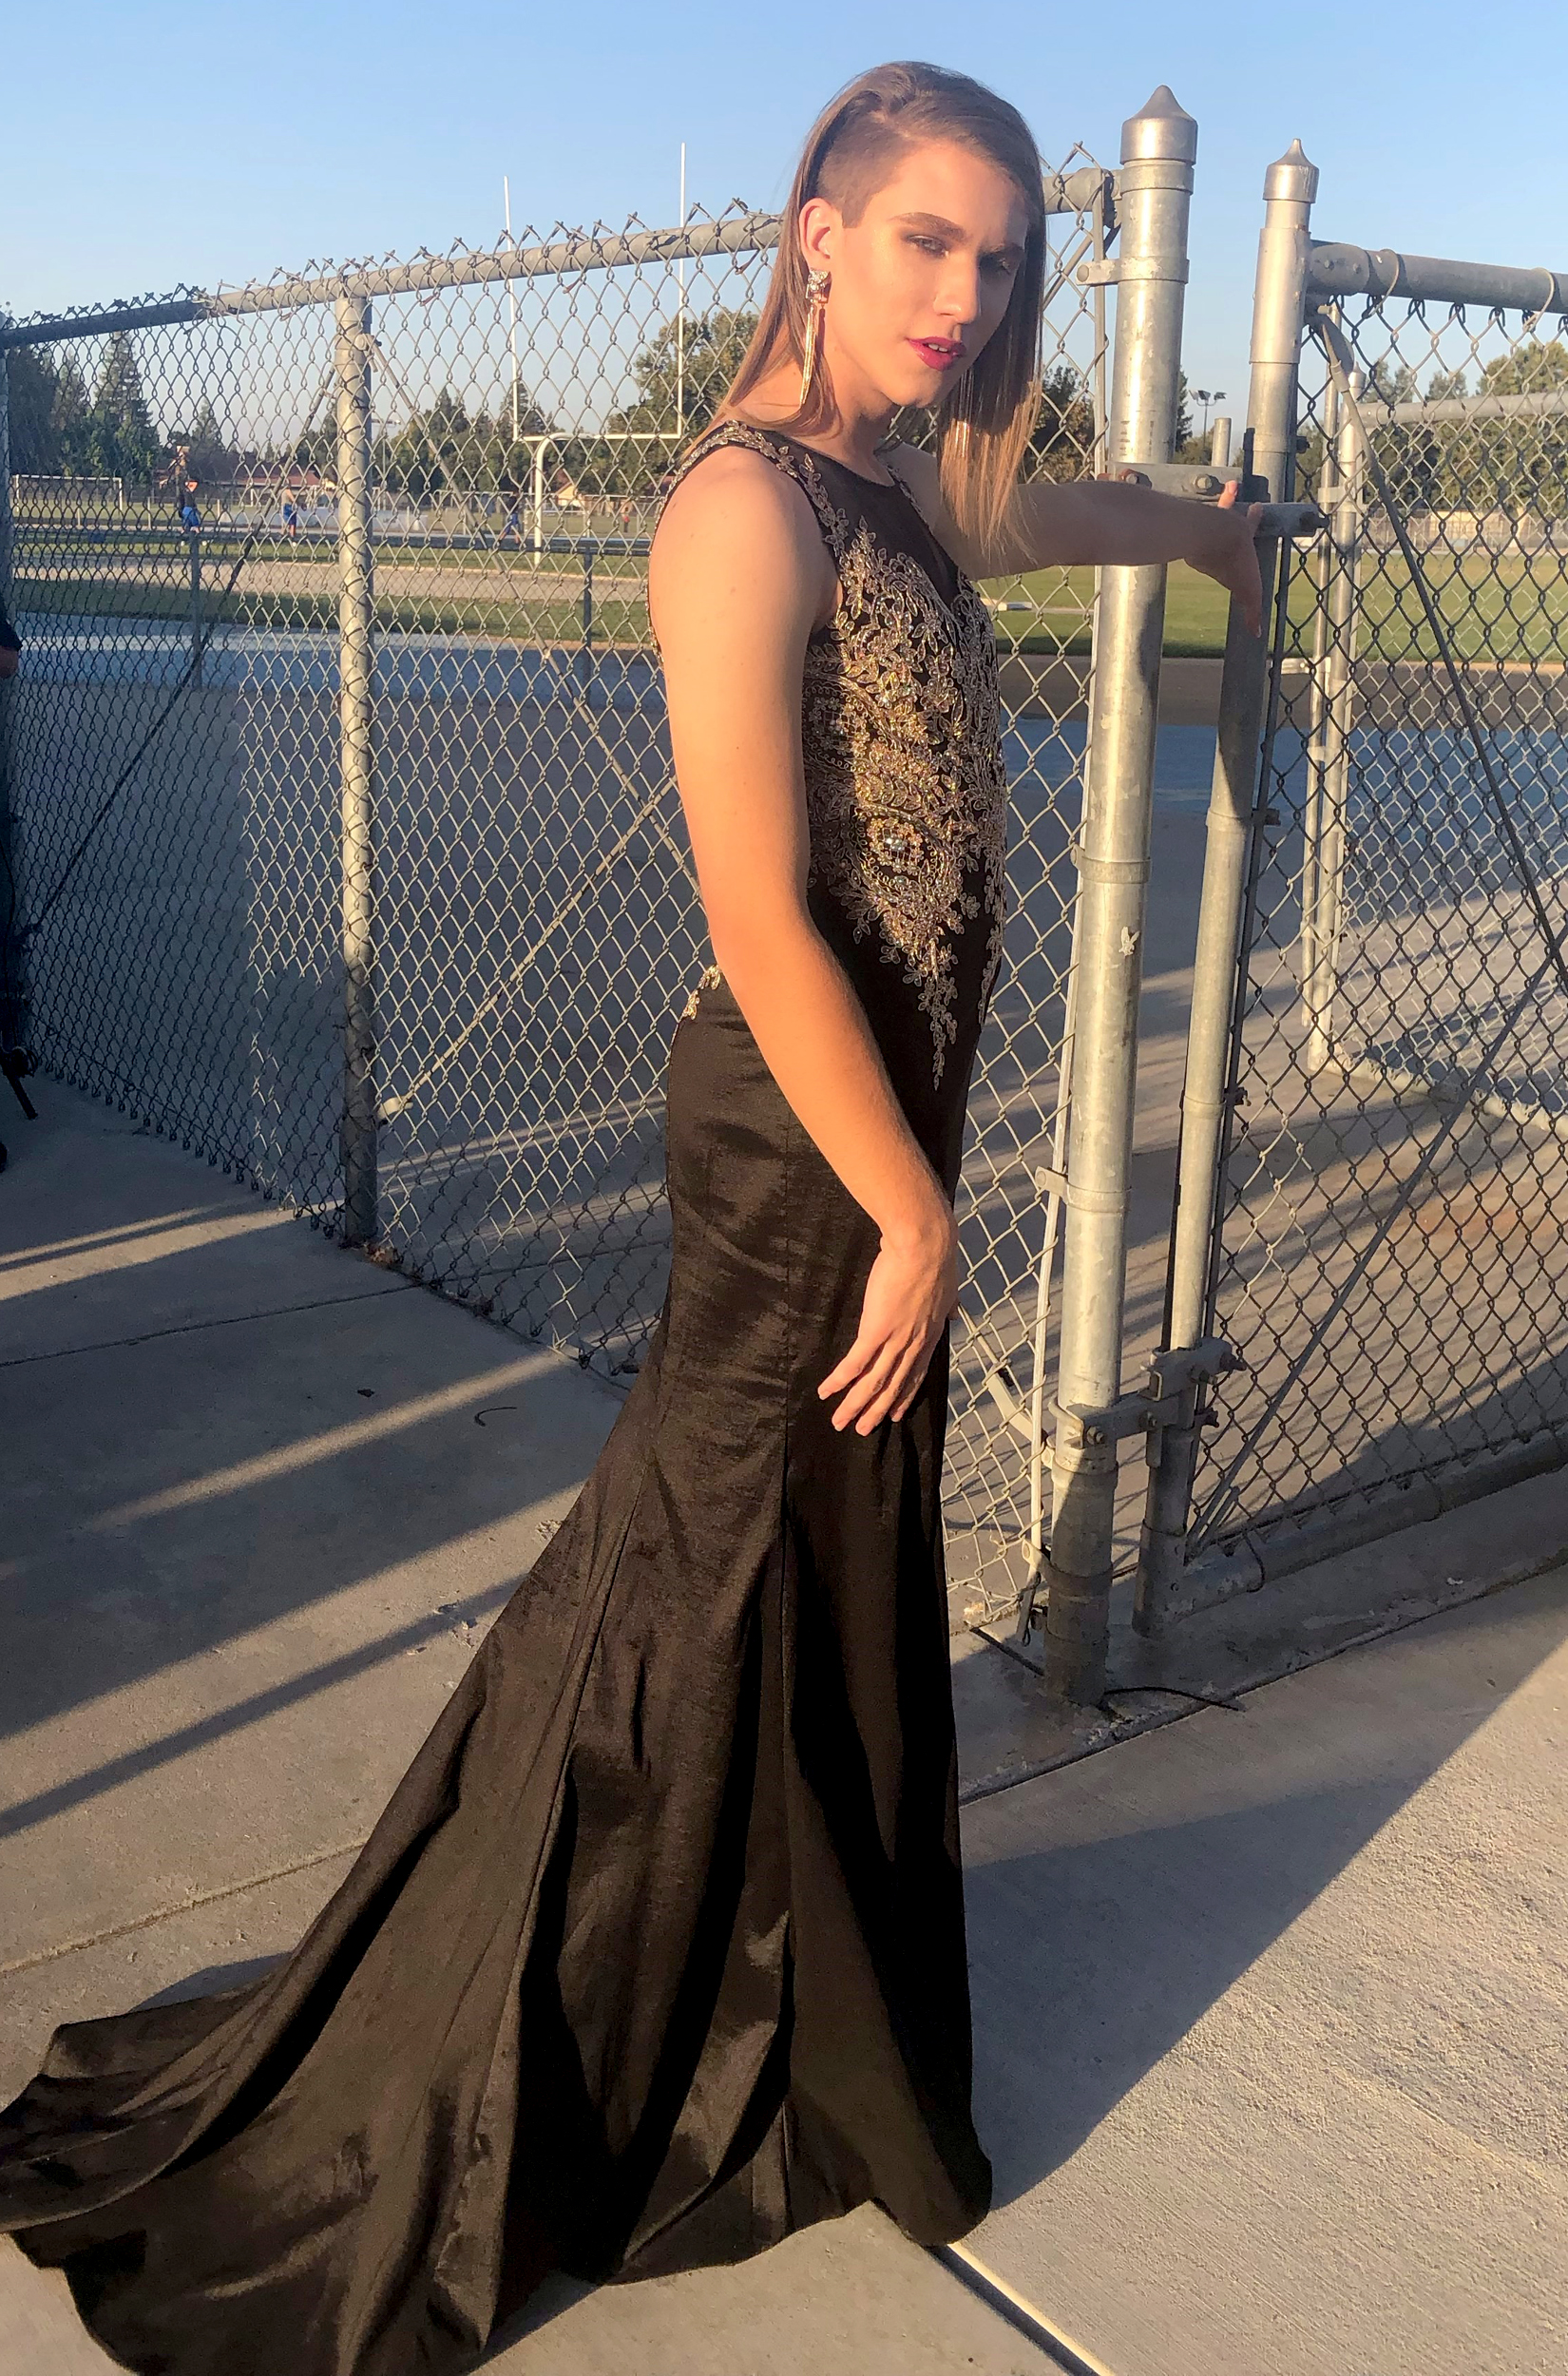 'Homecoming of Change': Nonbinary teen crowned homecoming queen